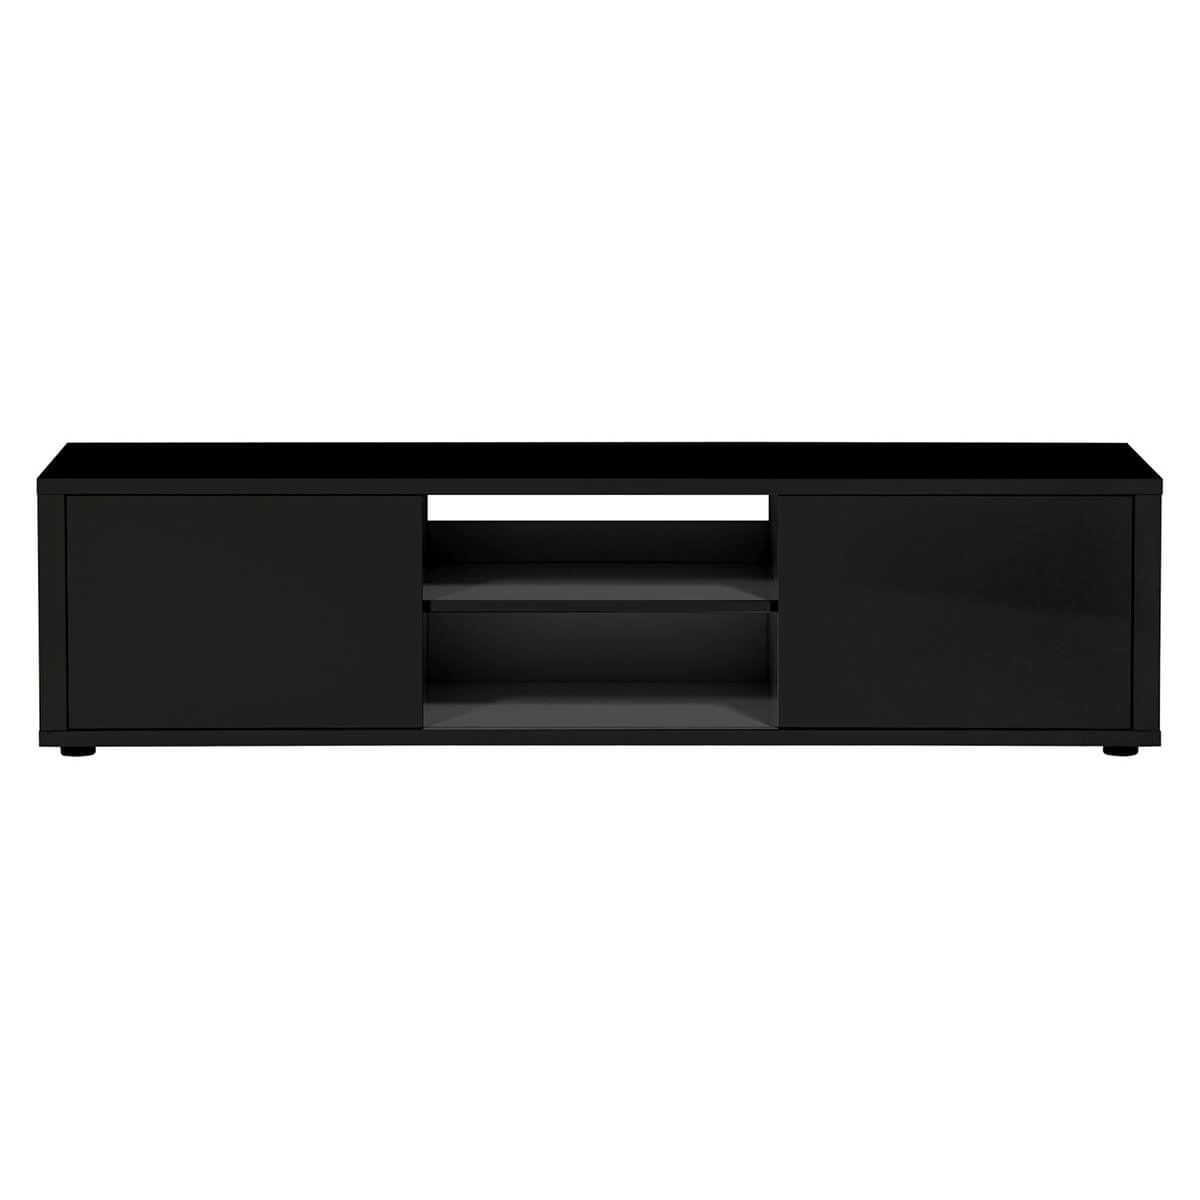 Urbana TV Unit 160cm Black High Gloss